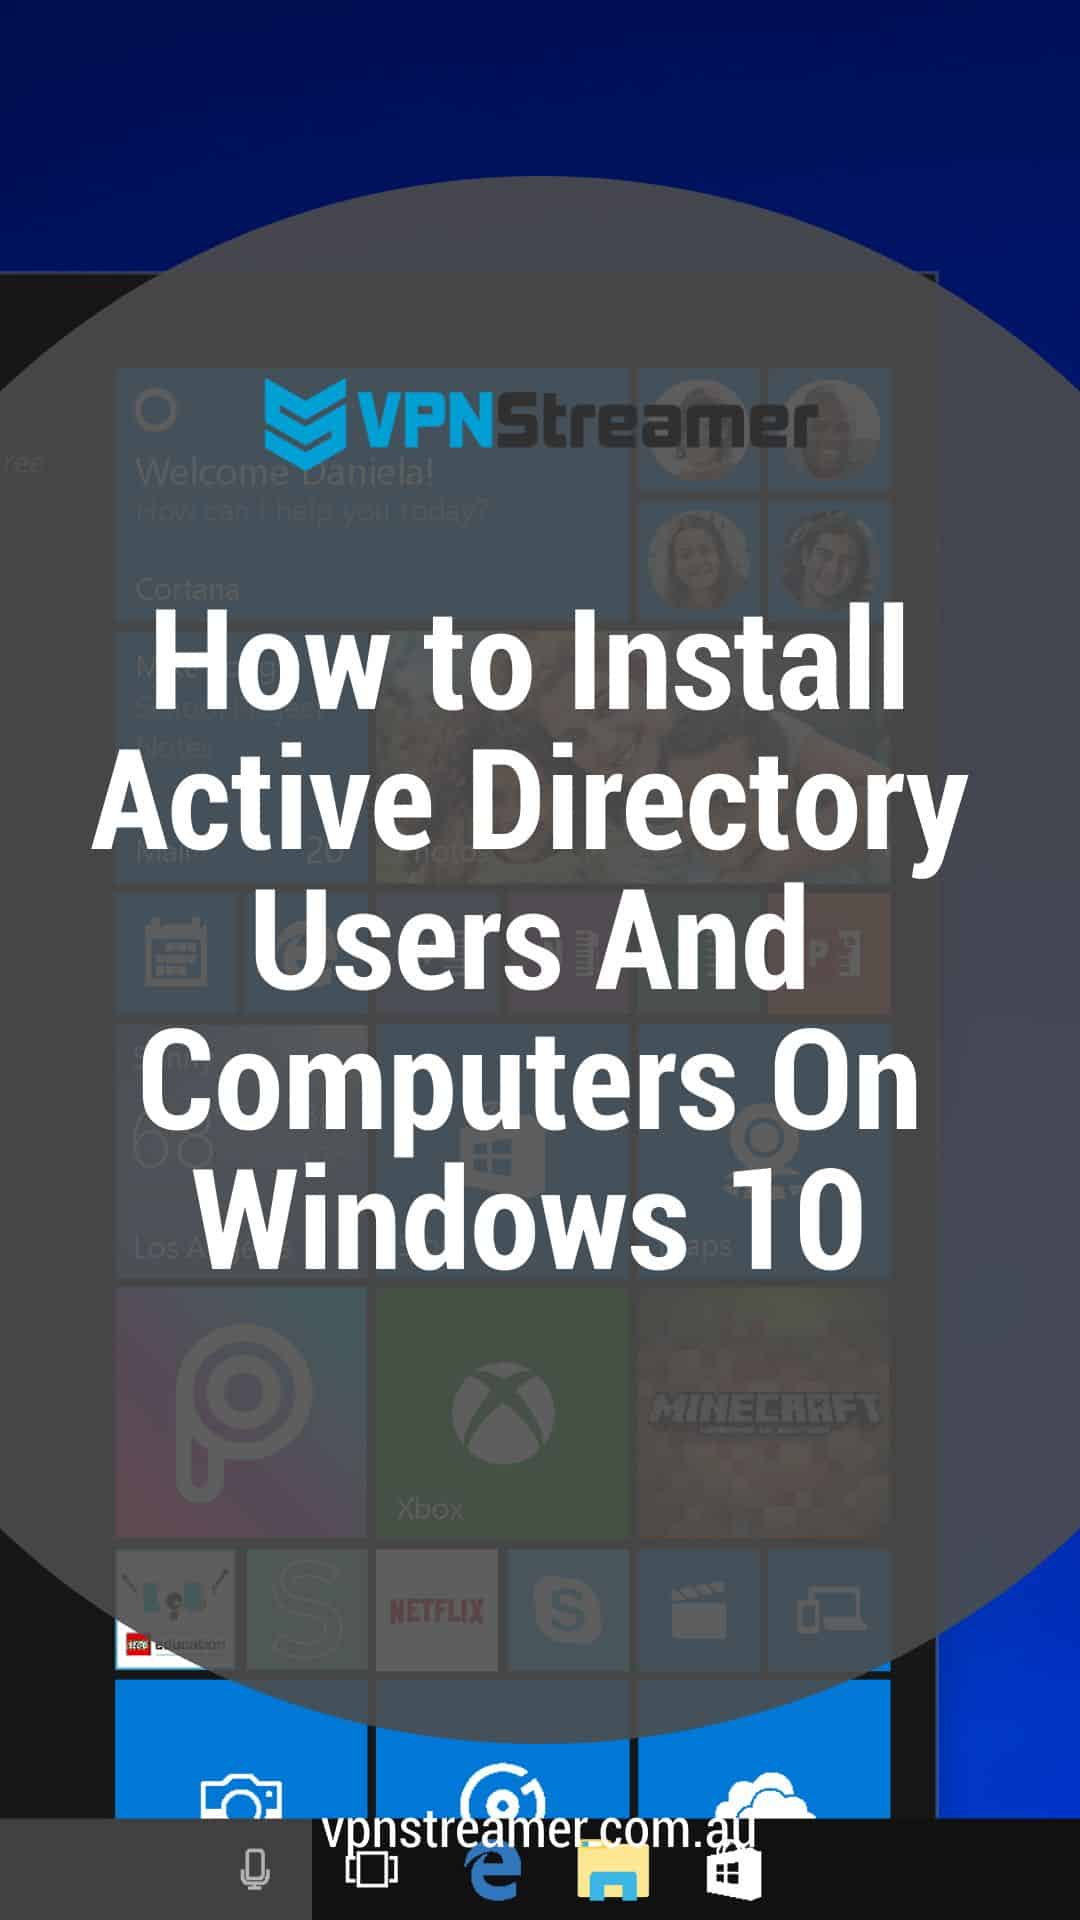 How to Install Active Directory Users And Computers On Windows 10